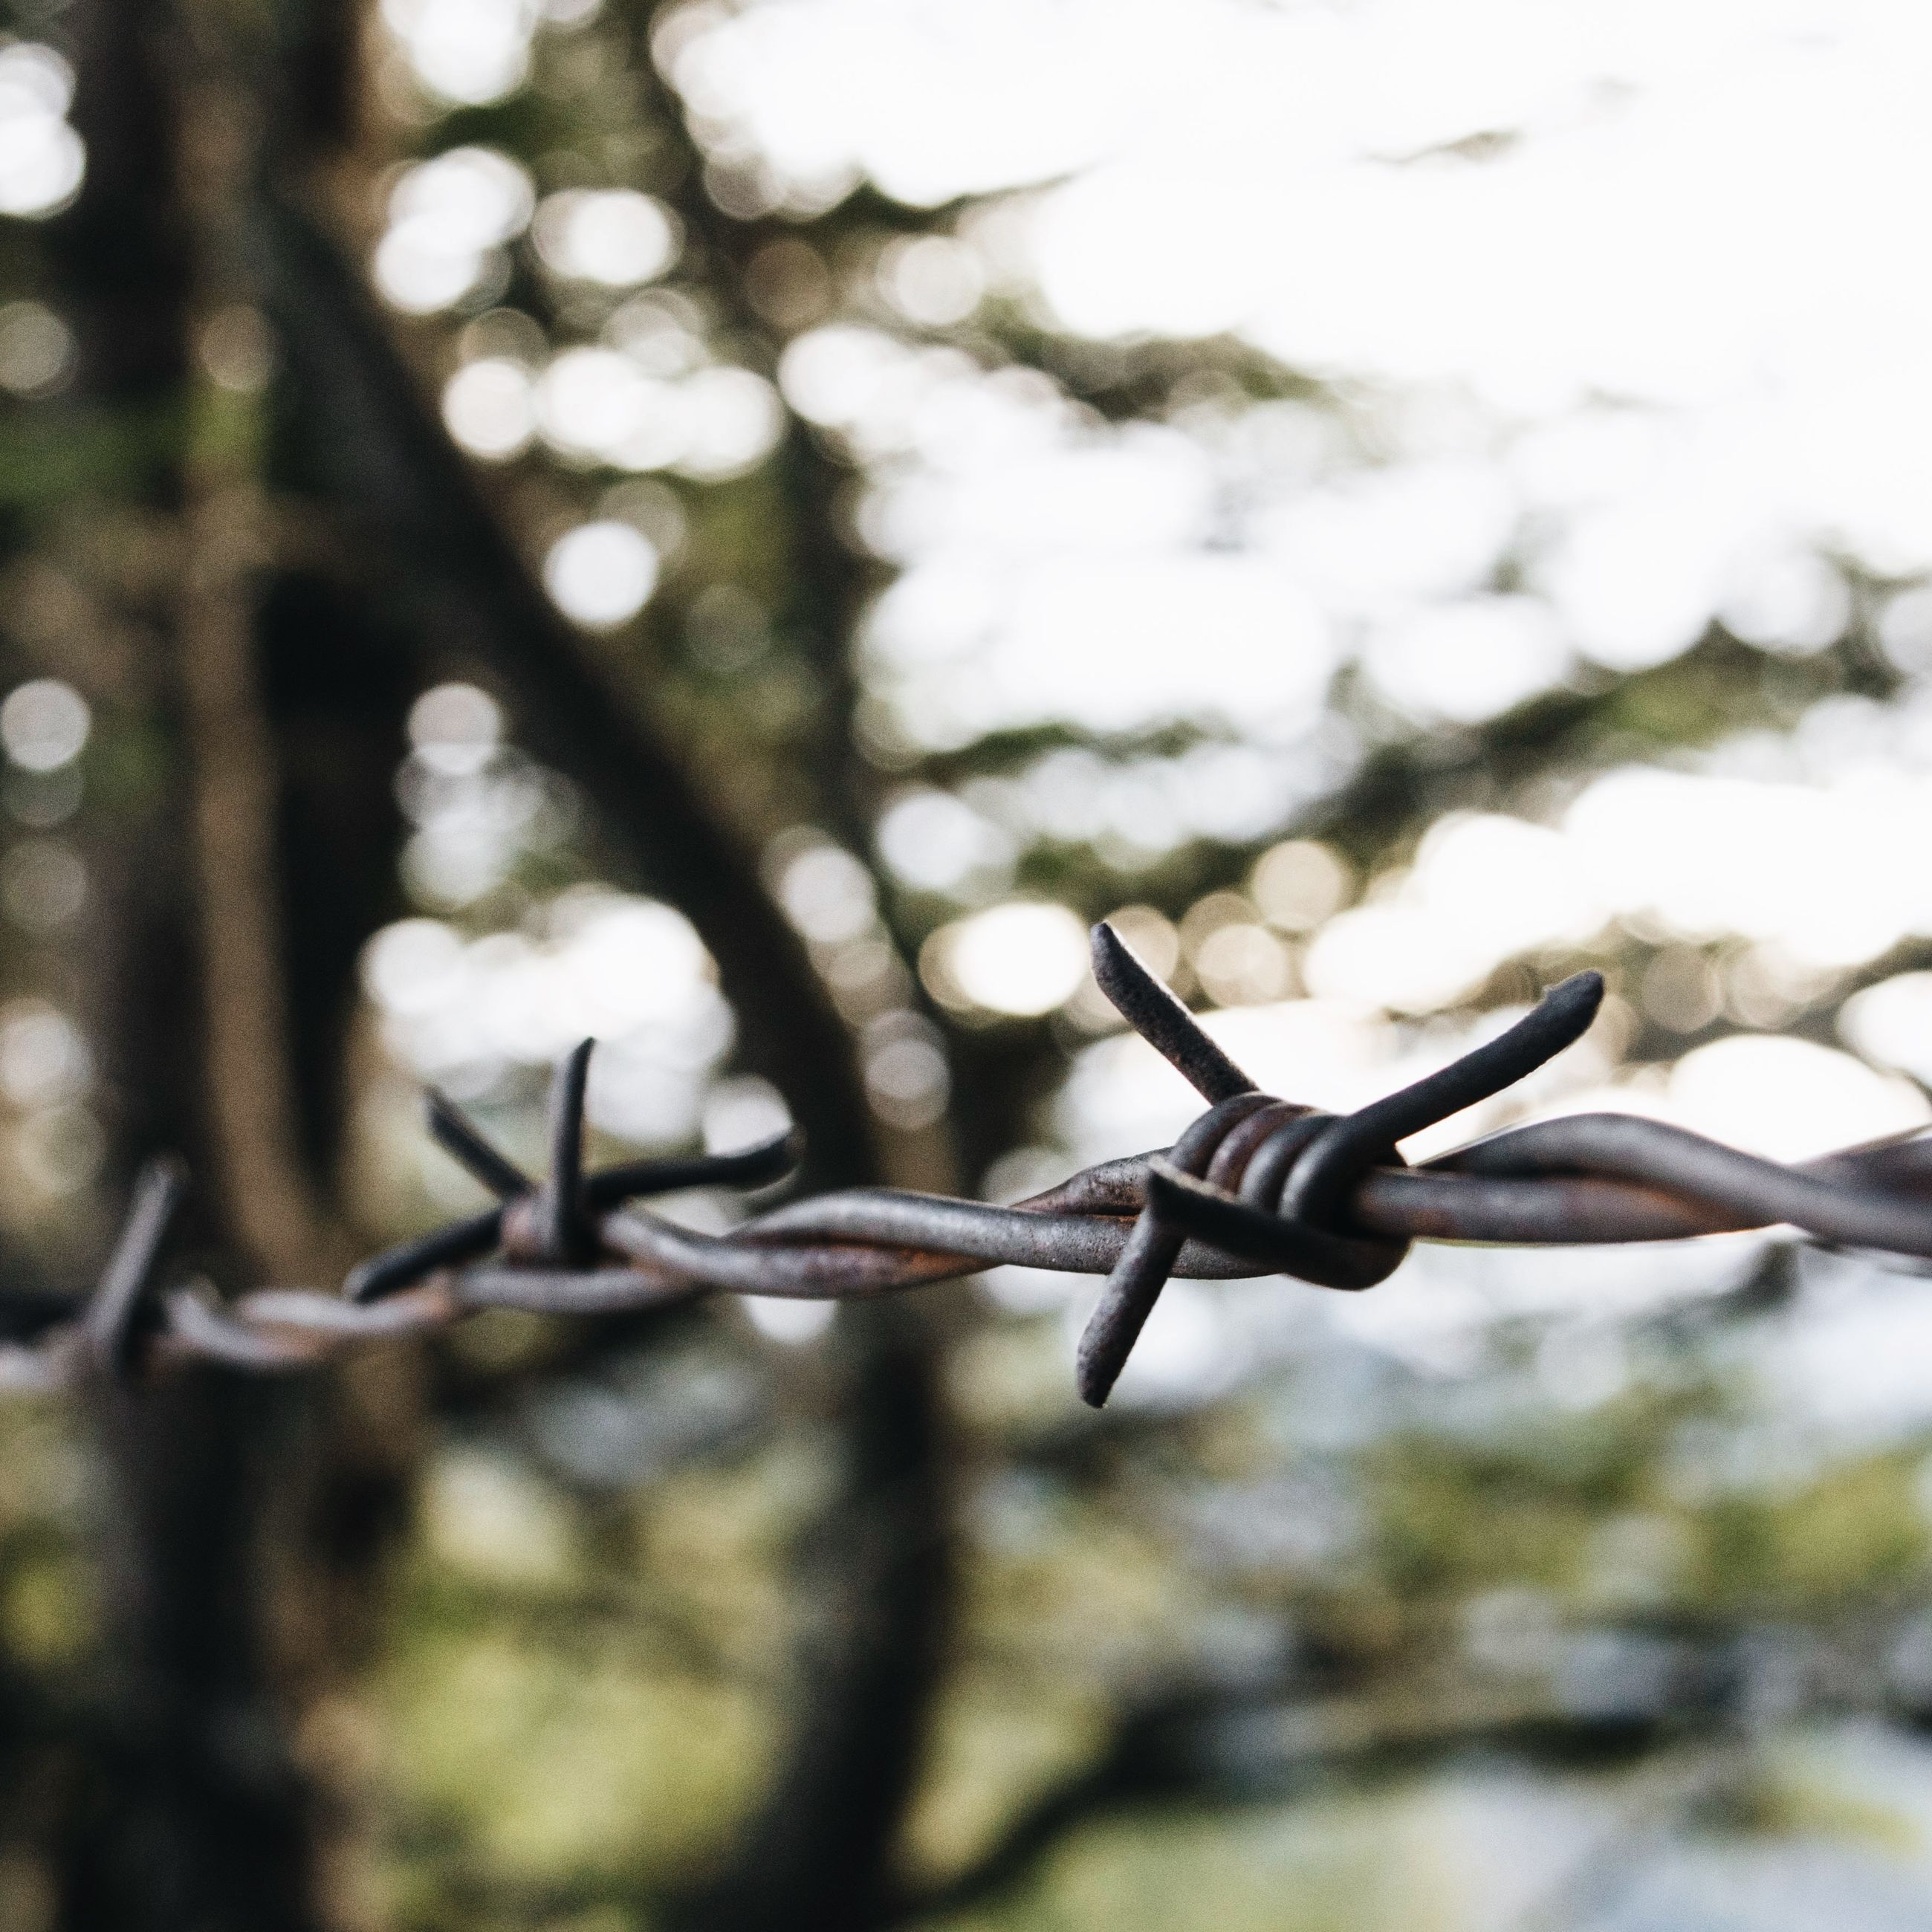 focus on foreground, close-up, metal, selective focus, day, outdoors, no people, metallic, protection, animals in the wild, nature, twig, branch, safety, animal themes, one animal, wildlife, tree, sunlight, fence